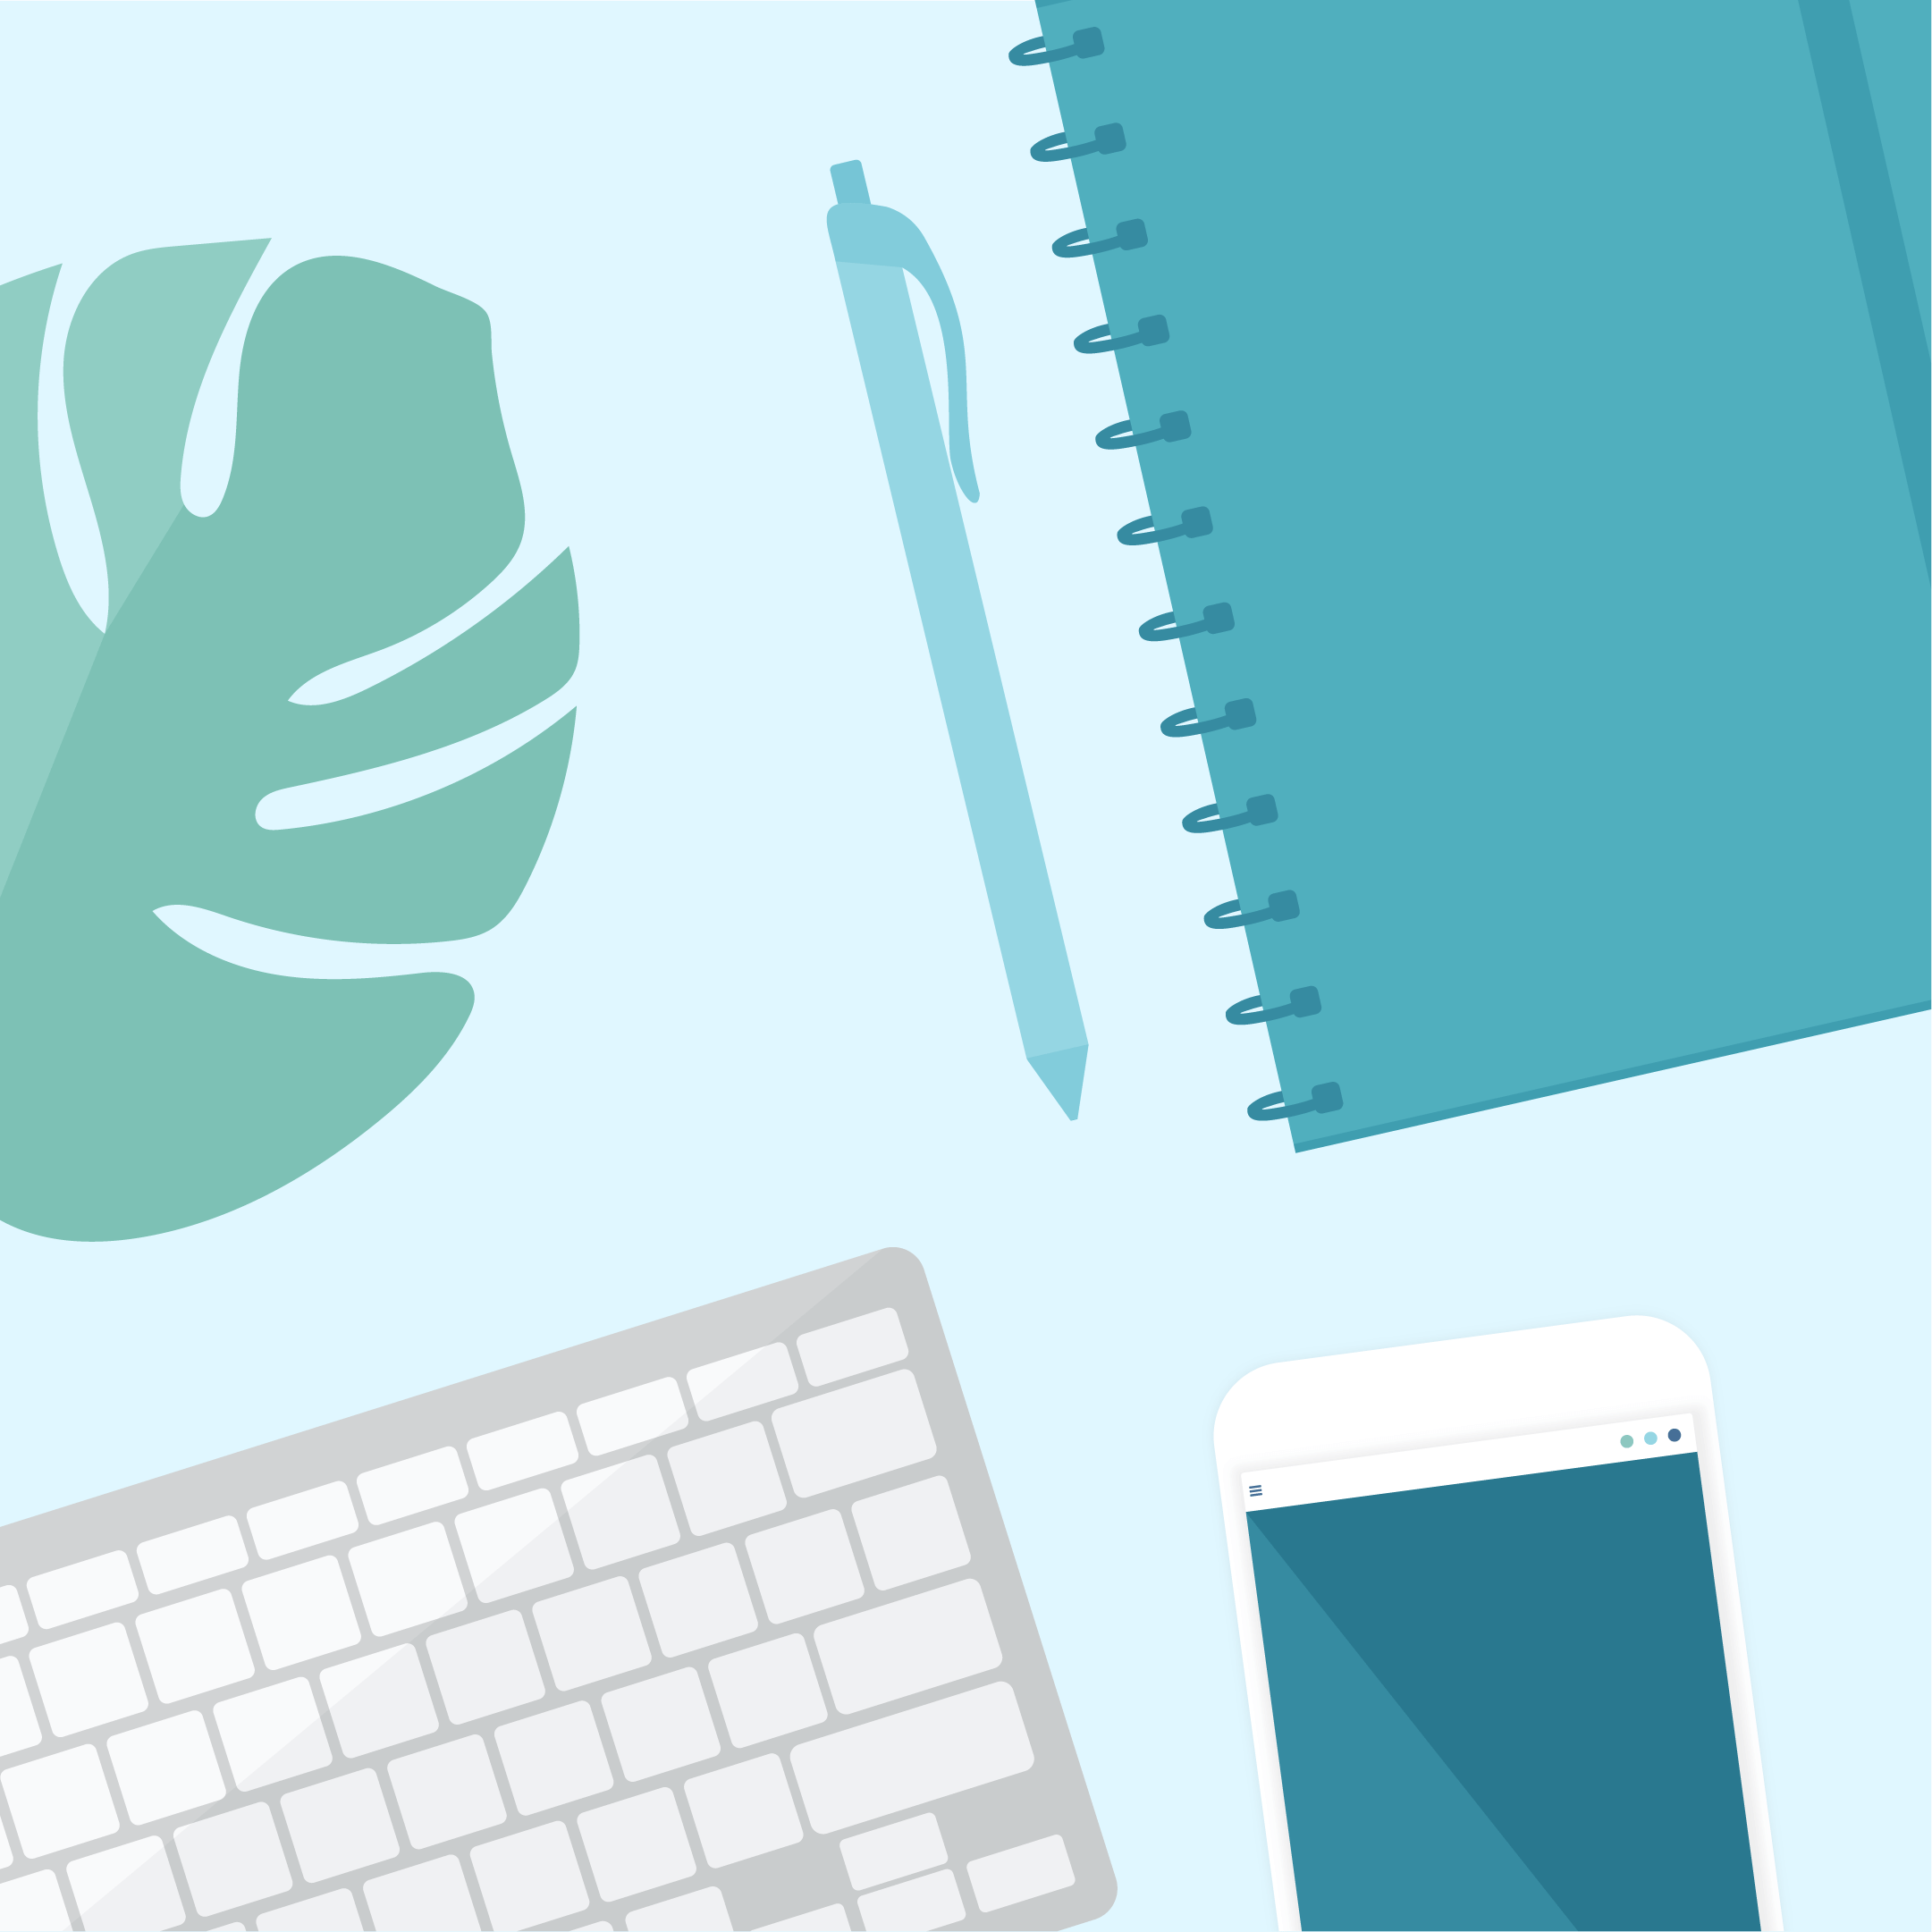 Flat lay, top view vector illustration of a desk in mint green & blue colours, including monstera leaf, spiral notebook with a ballpoint pen, wireless keyboard & smartphone in flat design style